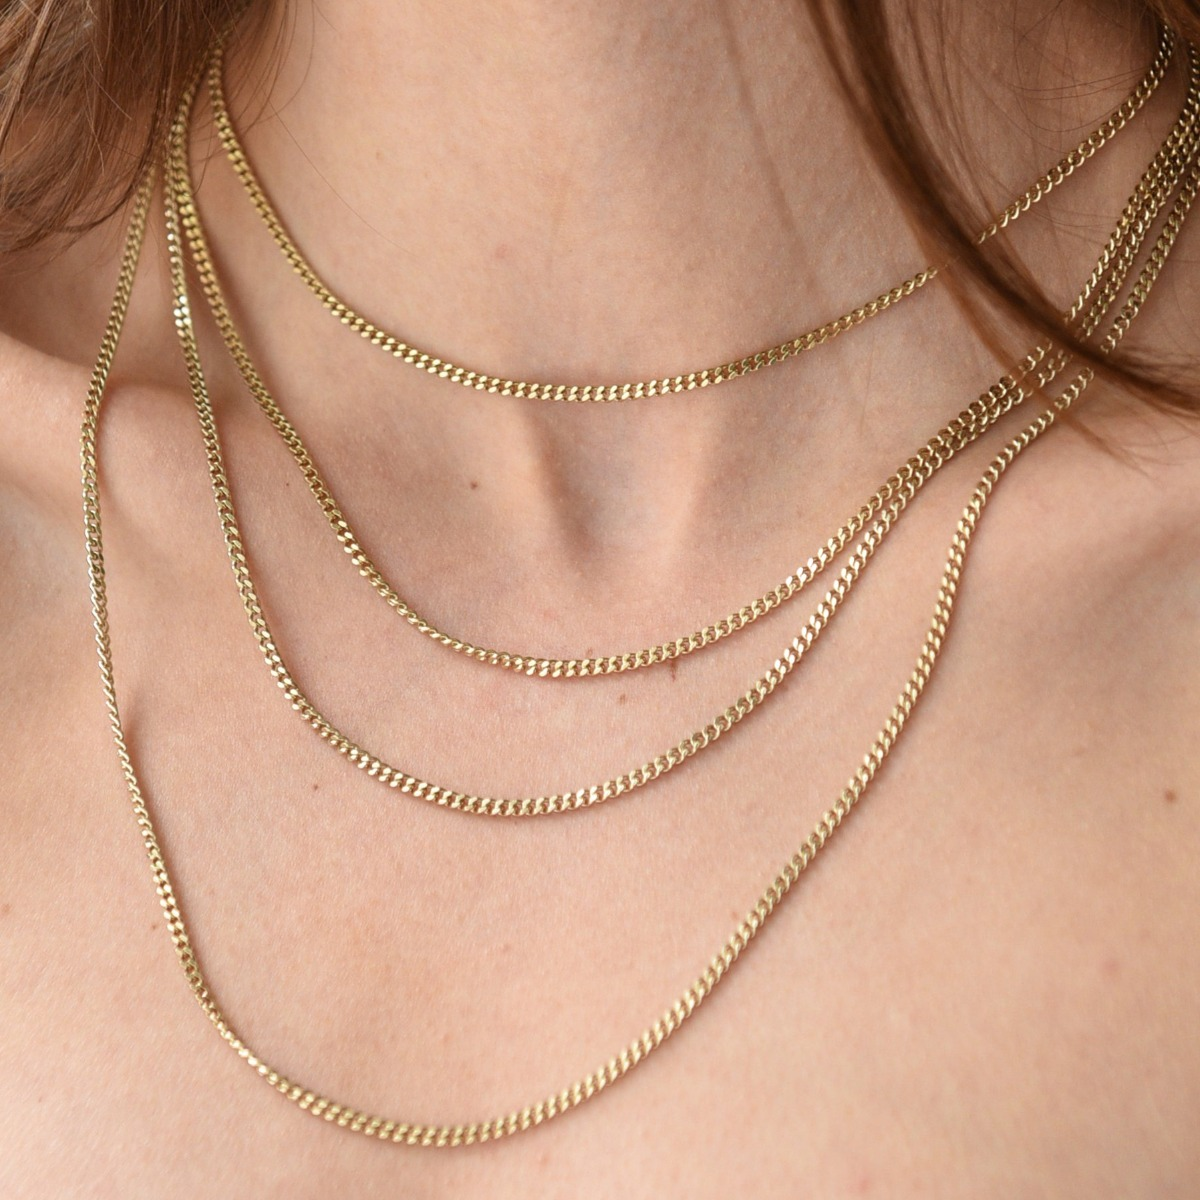 Delicate chain necklacen sterling silver